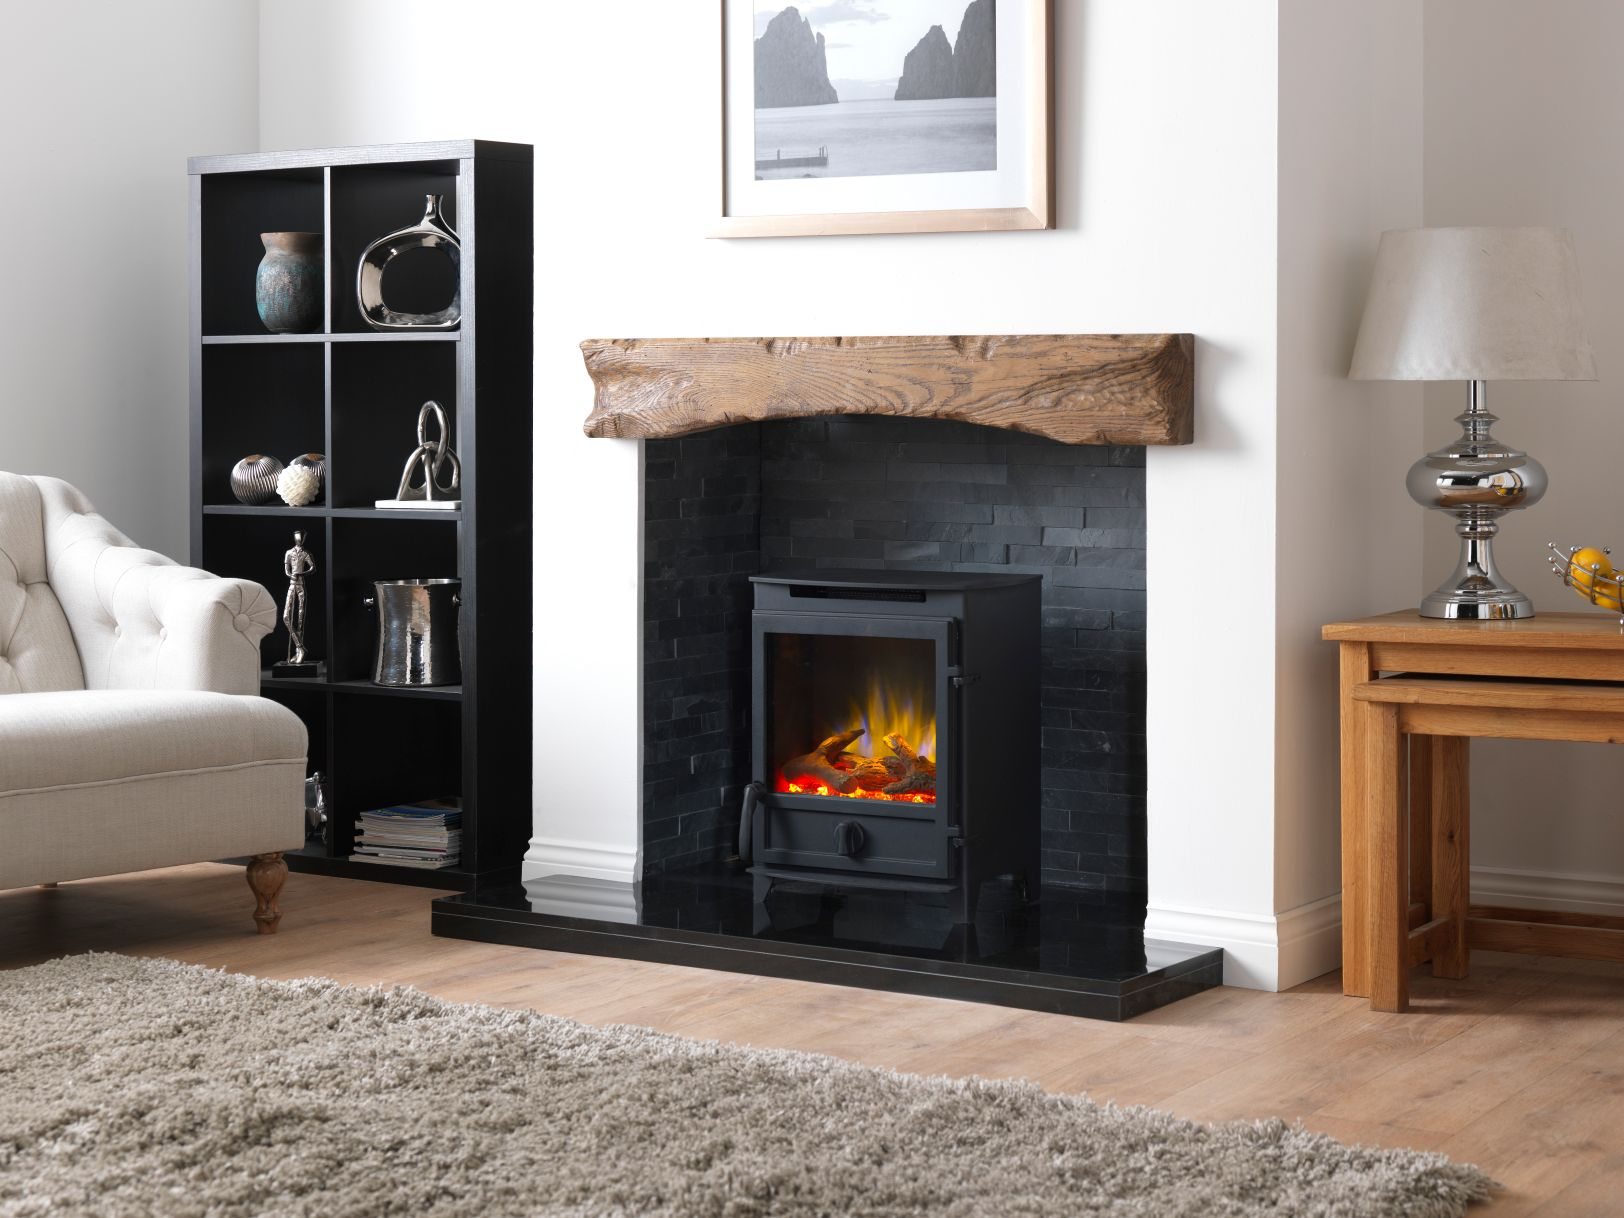 Fireline Electric Stove, Electric Log Burner, in Inglenook with Oak Beam